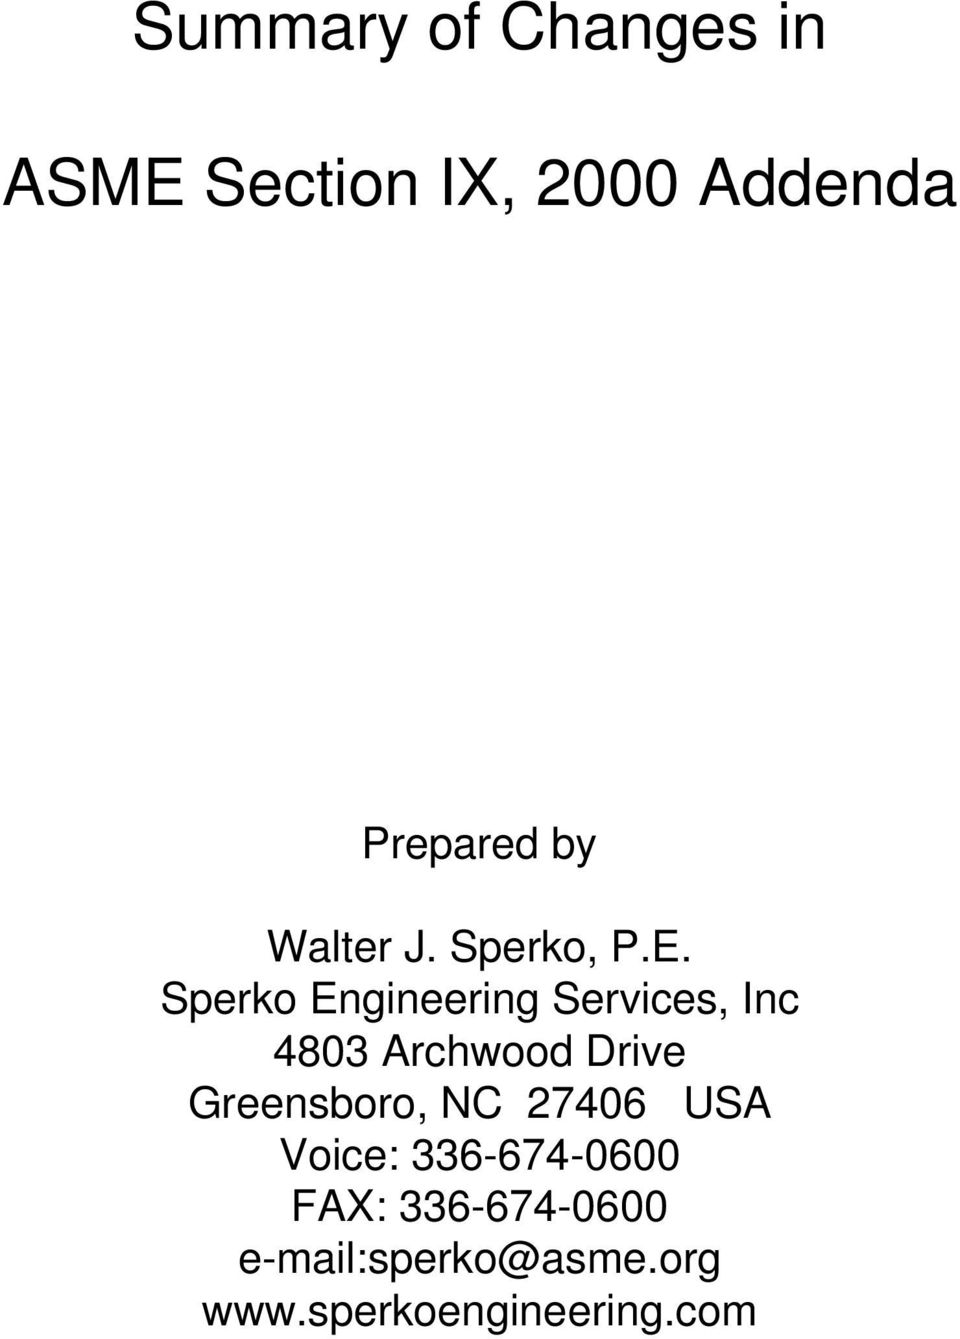 Summary of Changes in  ASME Section IX, 2000 Addenda - PDF